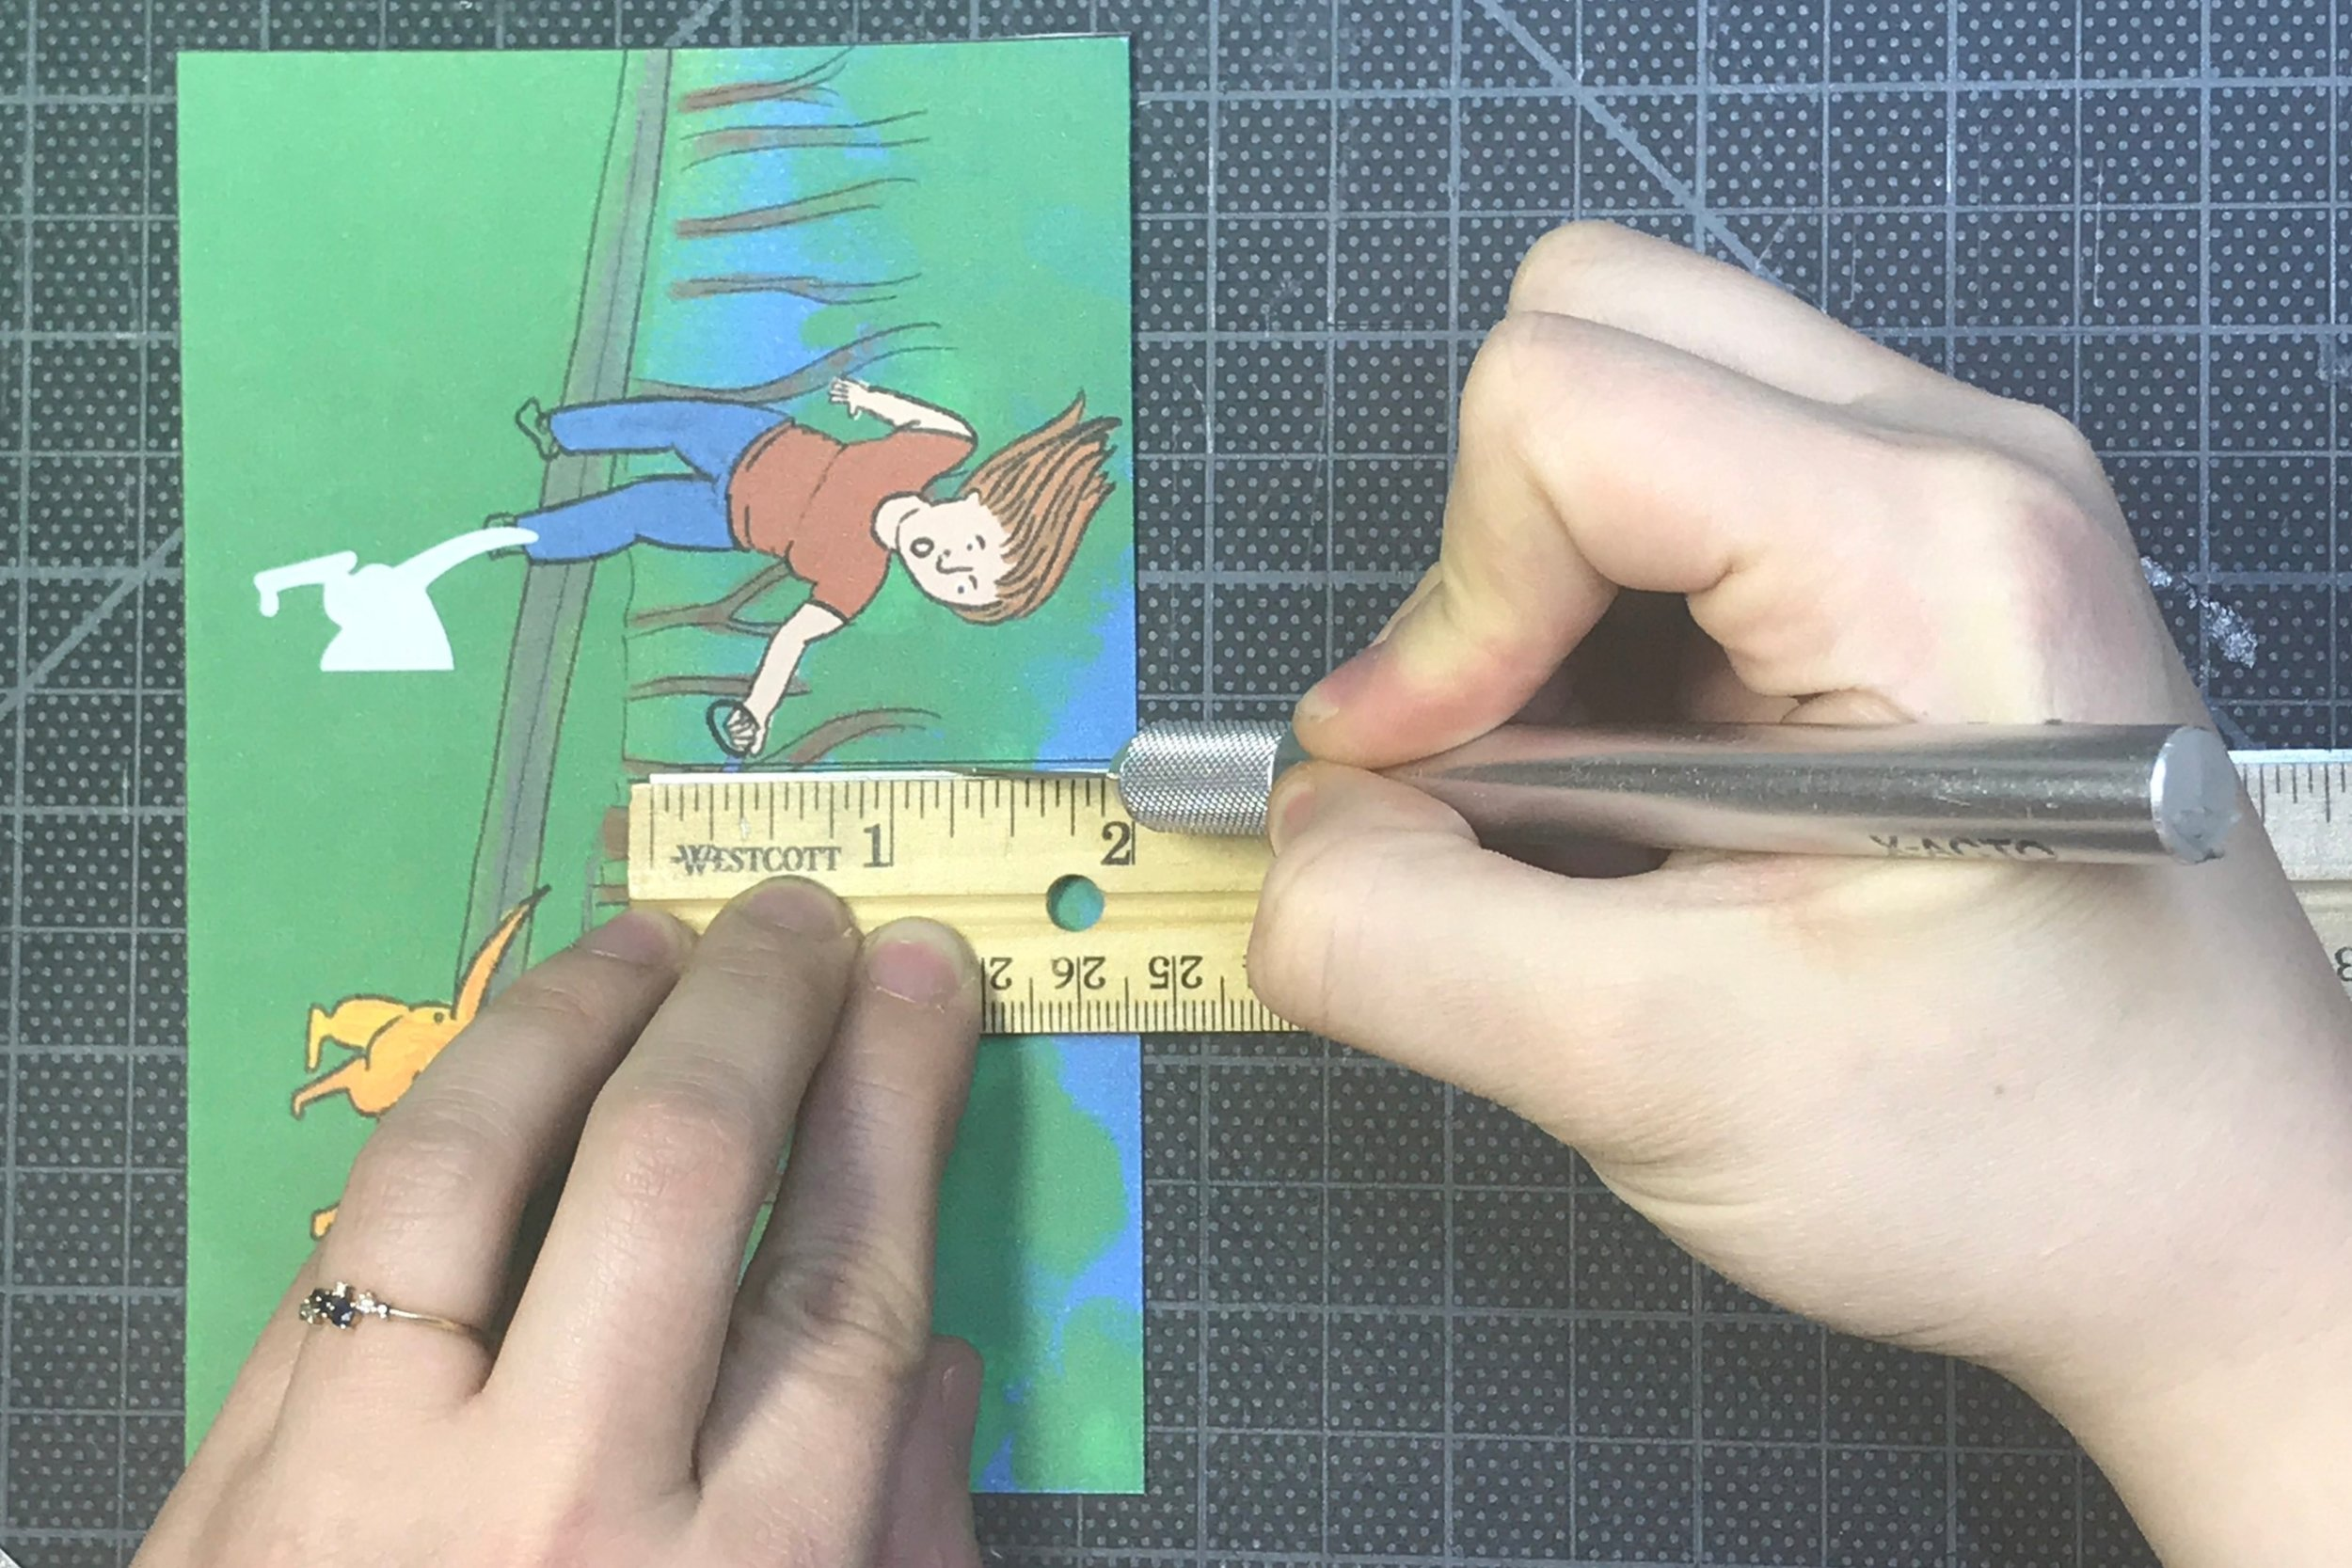 Cut the center line of your second postcard. The line is in the center of the card and runs two inches down from the top.